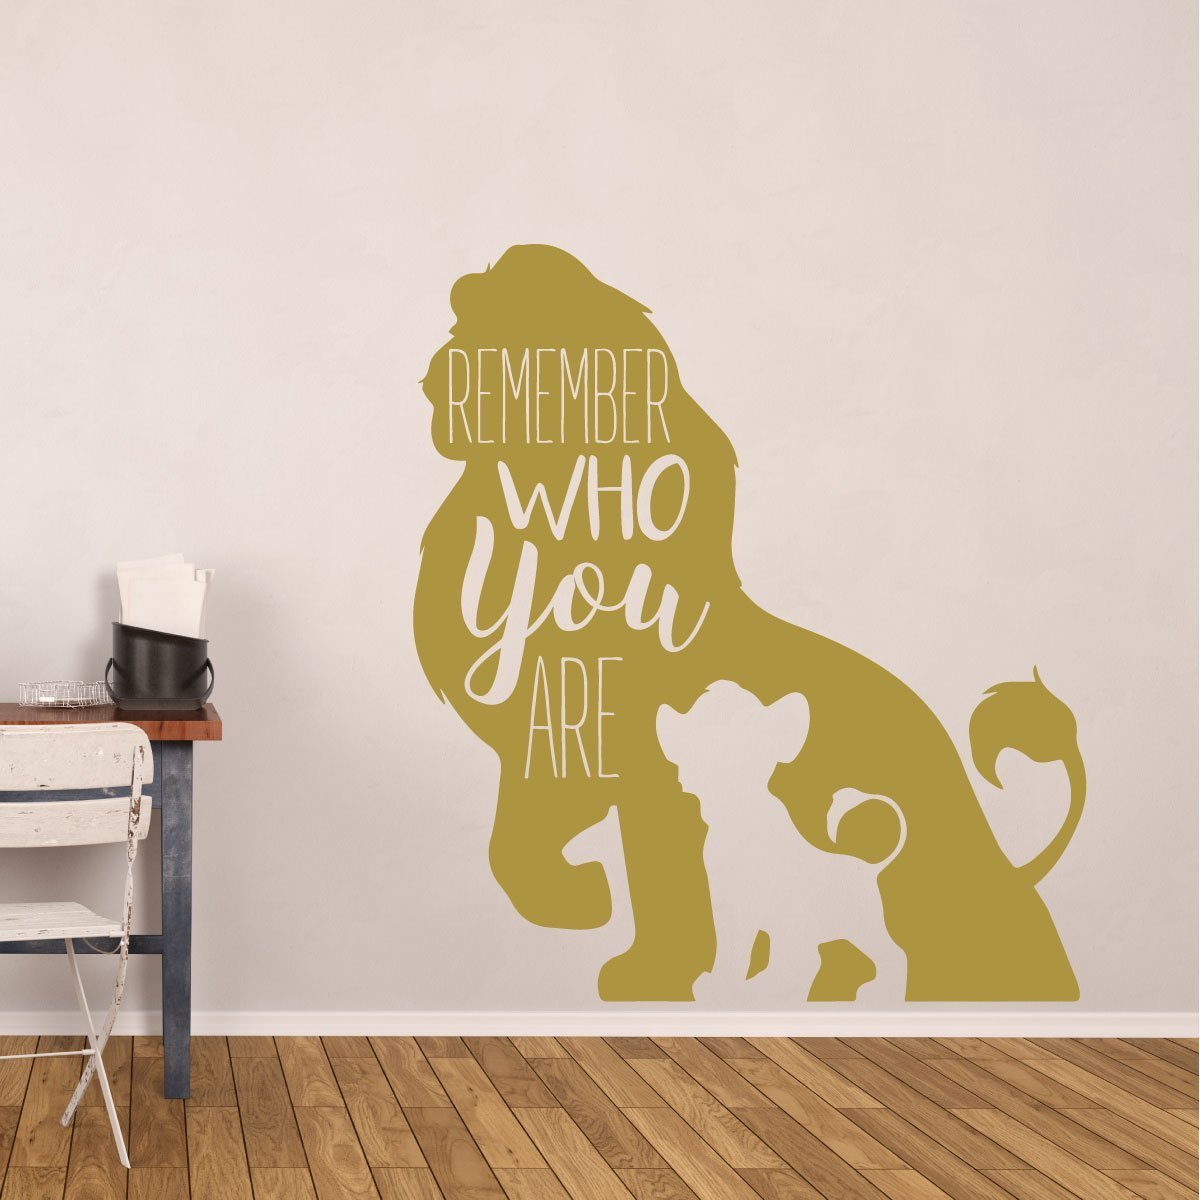 Enchanting Wall Art Stickers South Africa Model - Wall Art ...